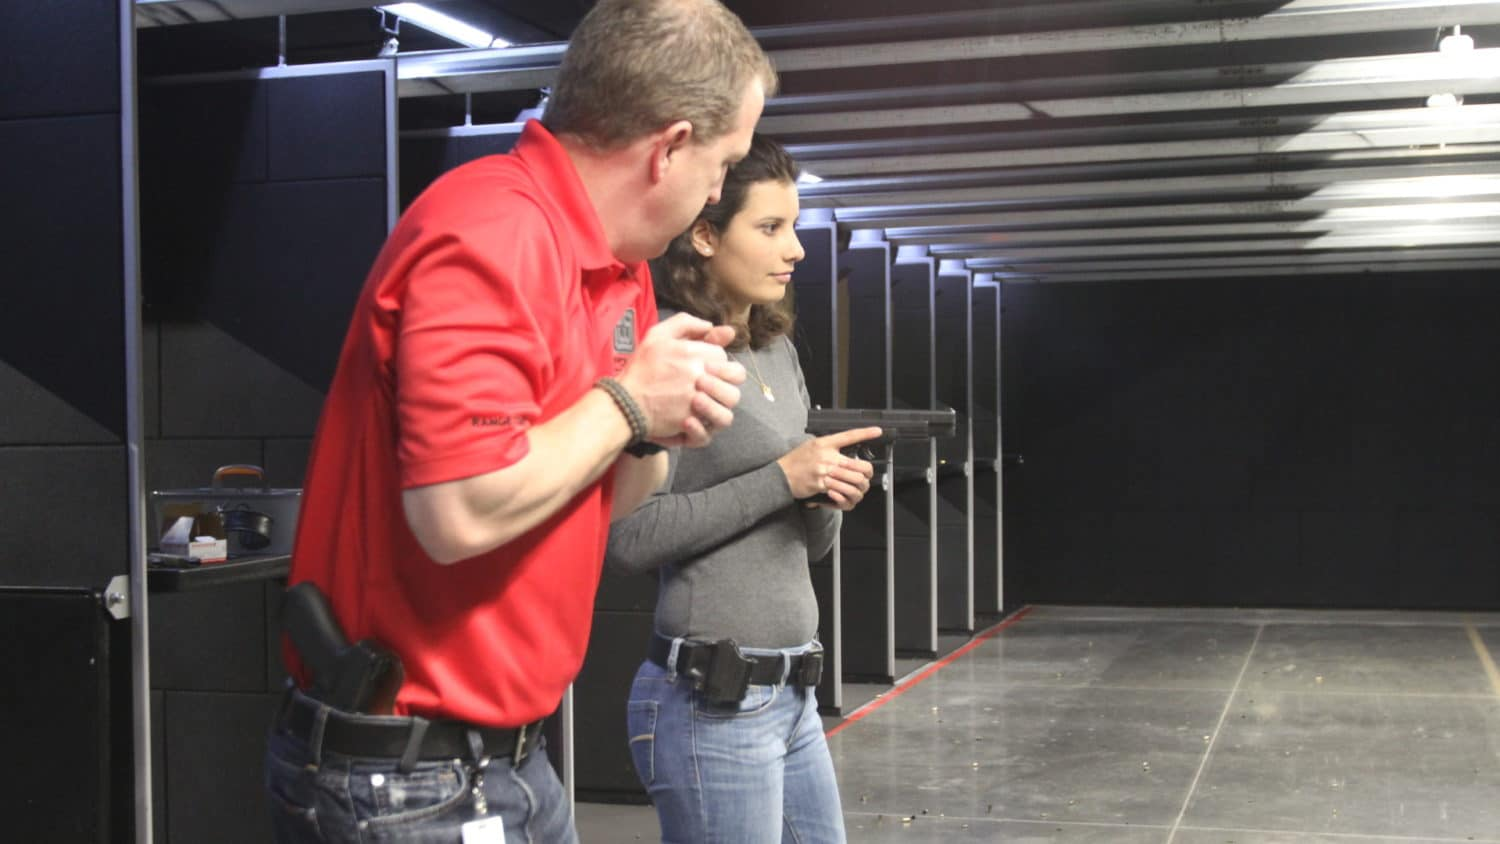 Firearm Training at Poway Weapons & Gear Range